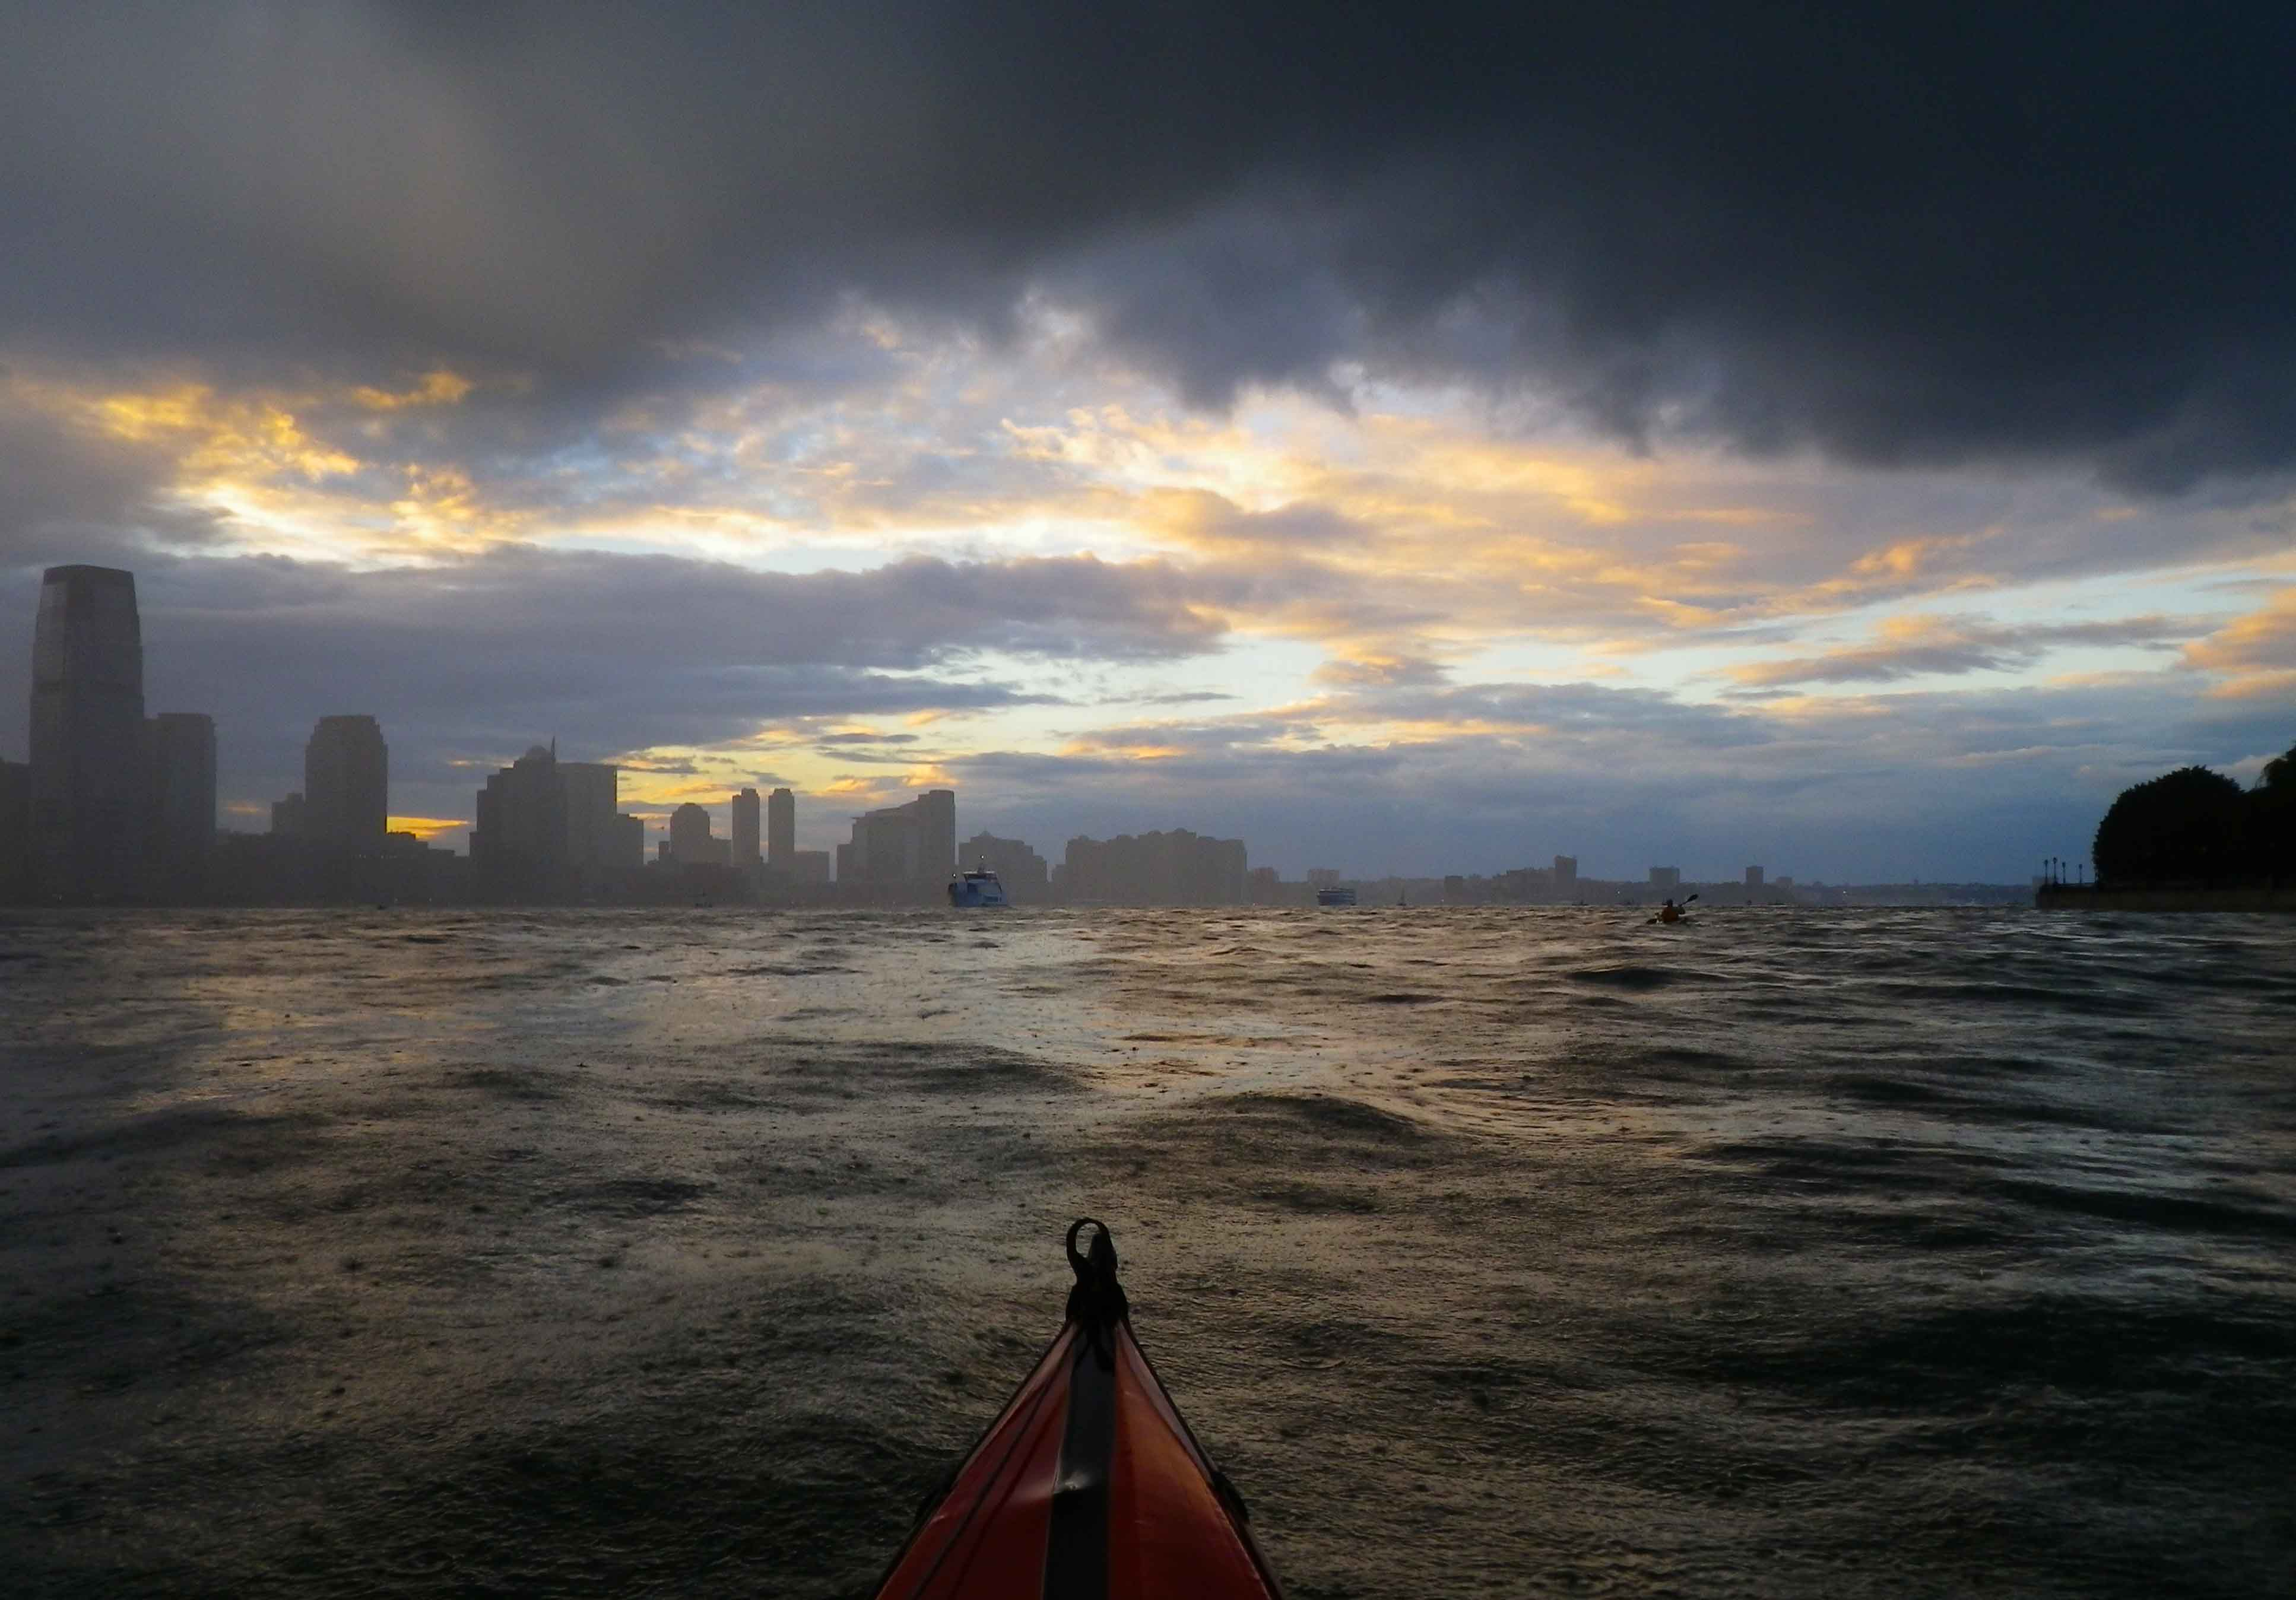 Apocalyptic Skies Over New York Harbor Wind Against Current